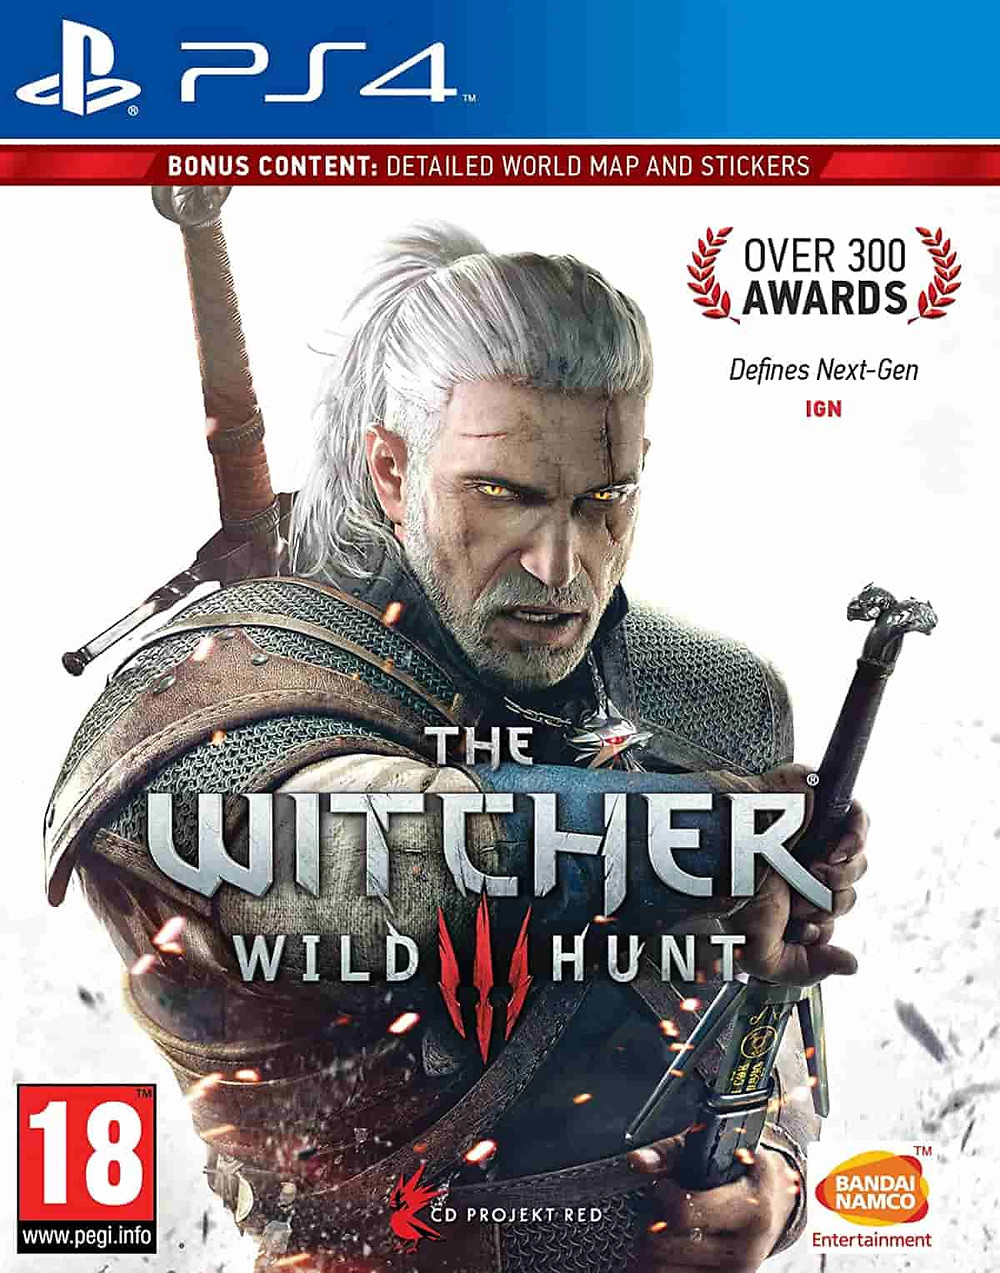 Juego imprescindible ps4: The Witcher 3: Wild Hunt